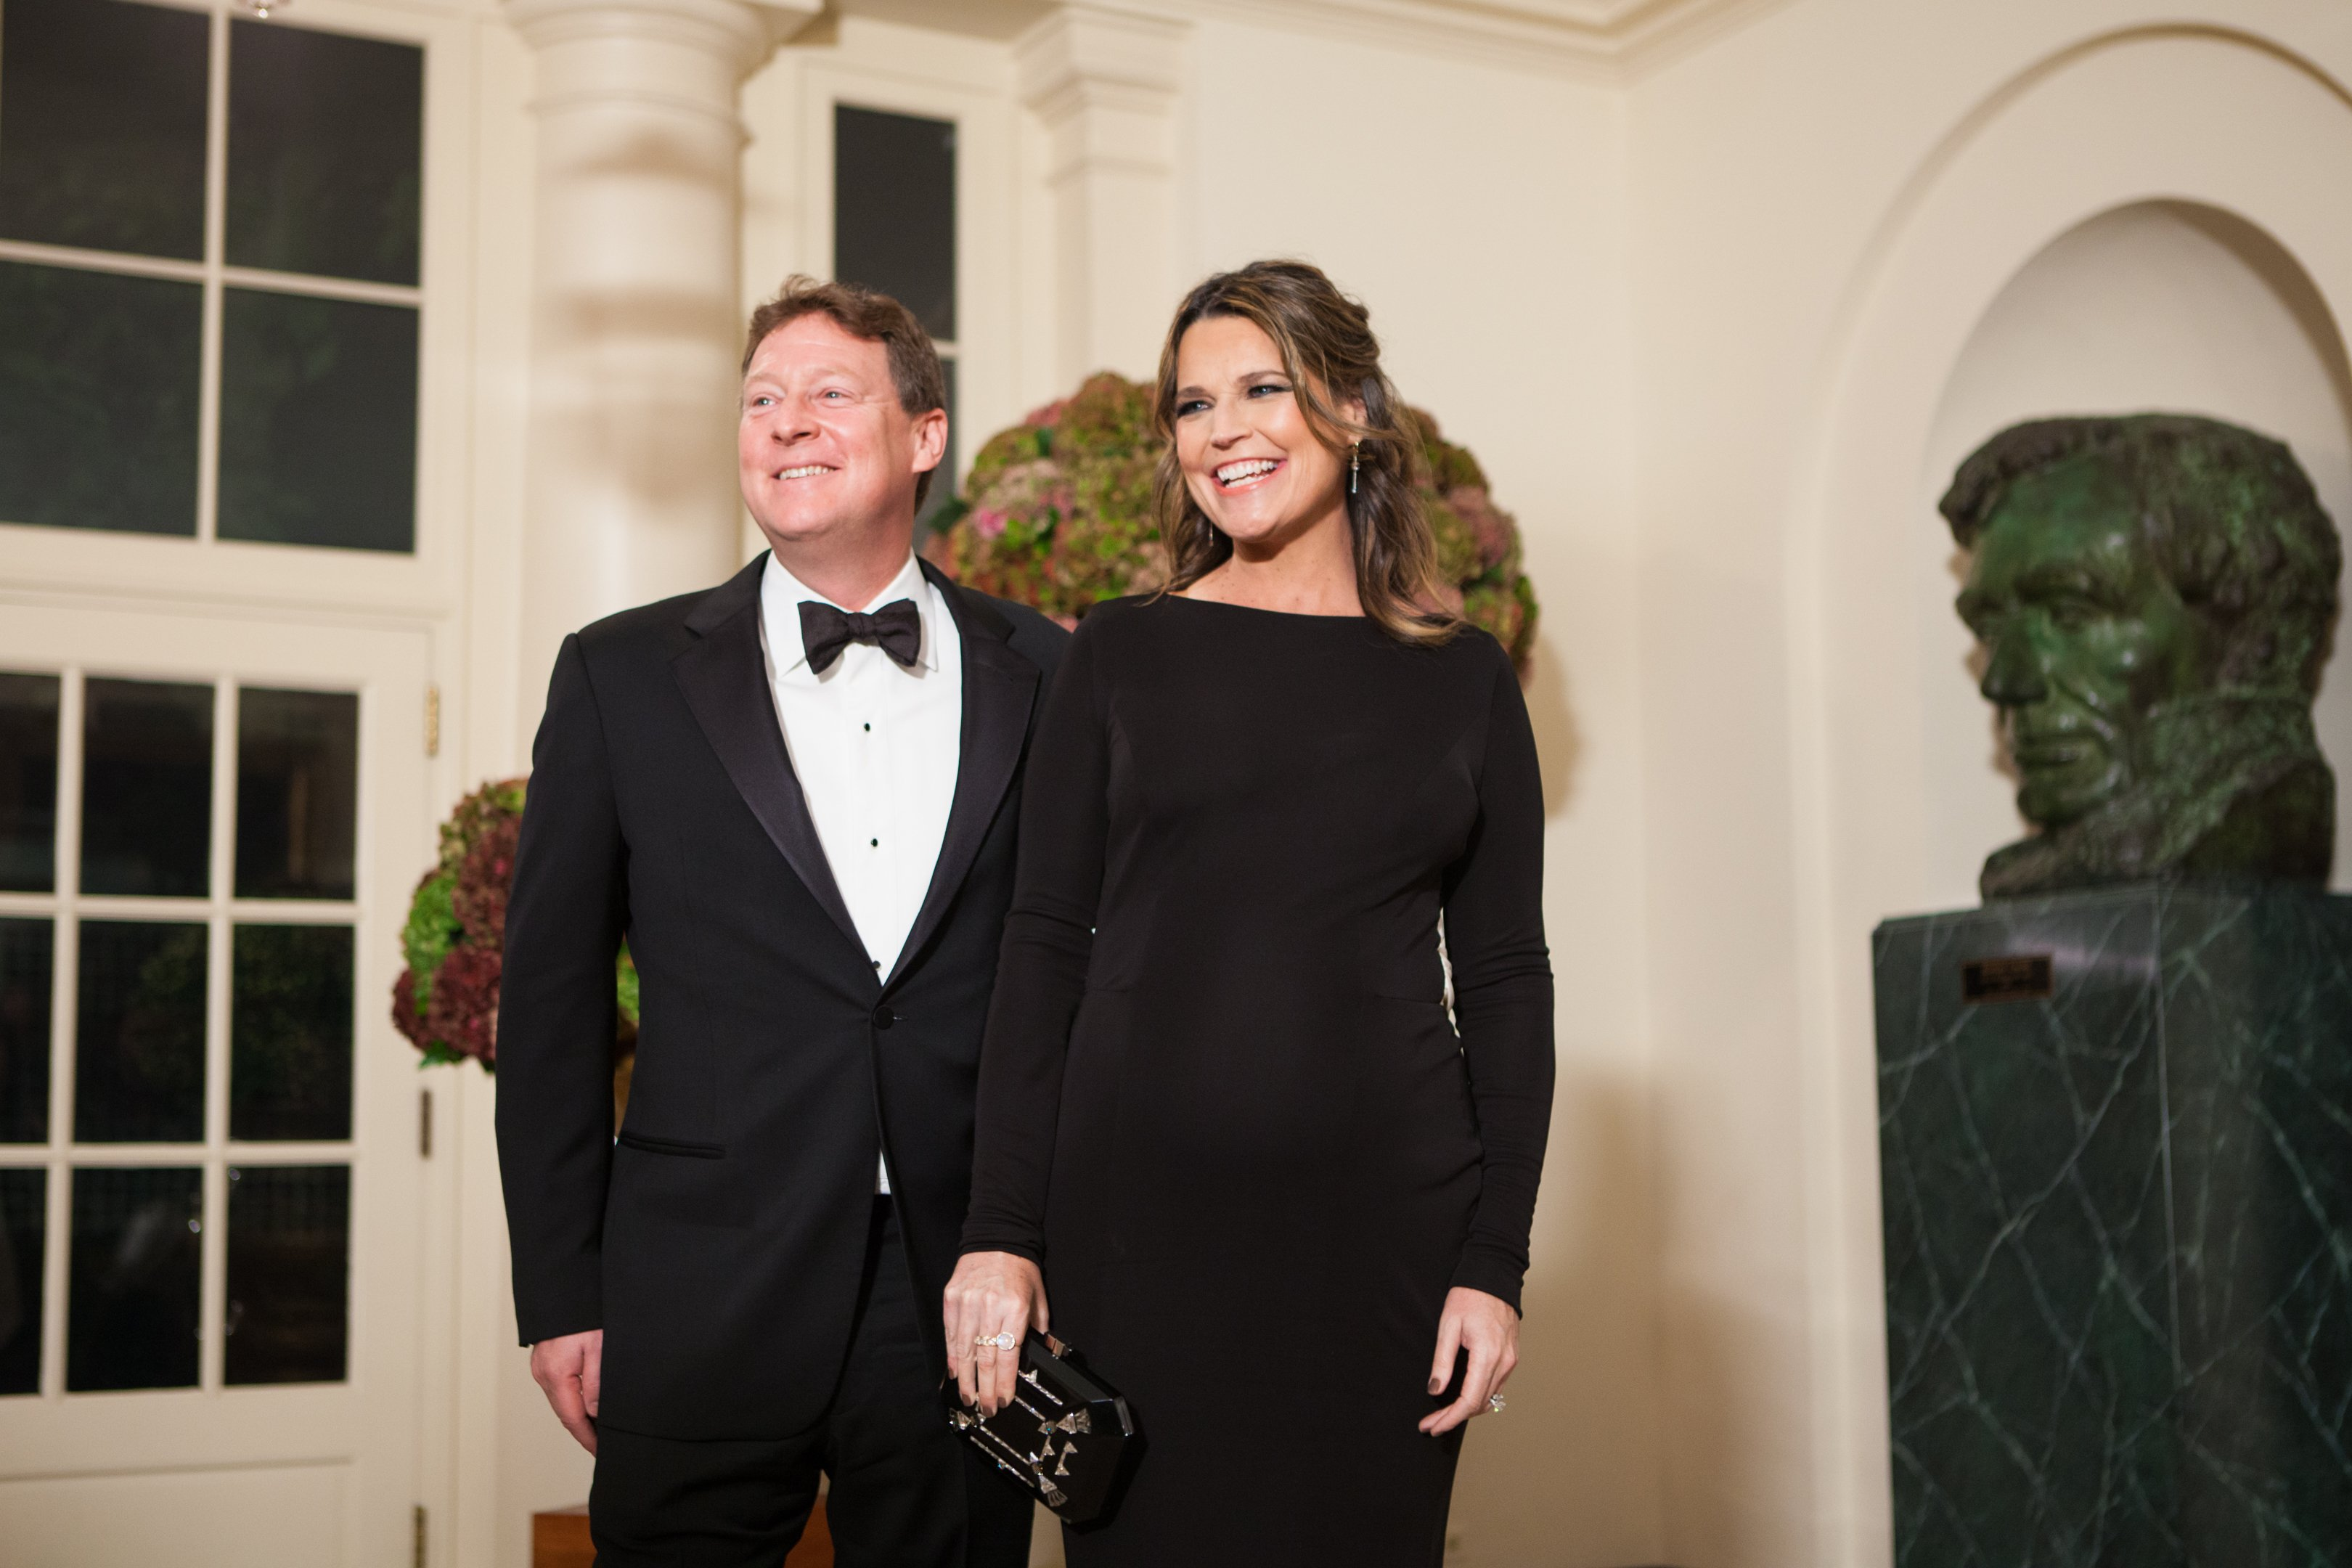 Savannah Guthrie and her husband Michael Feldman, arrive at the White House in Washington, DC, USA on 18 October 2016 | Photo: Getty Images